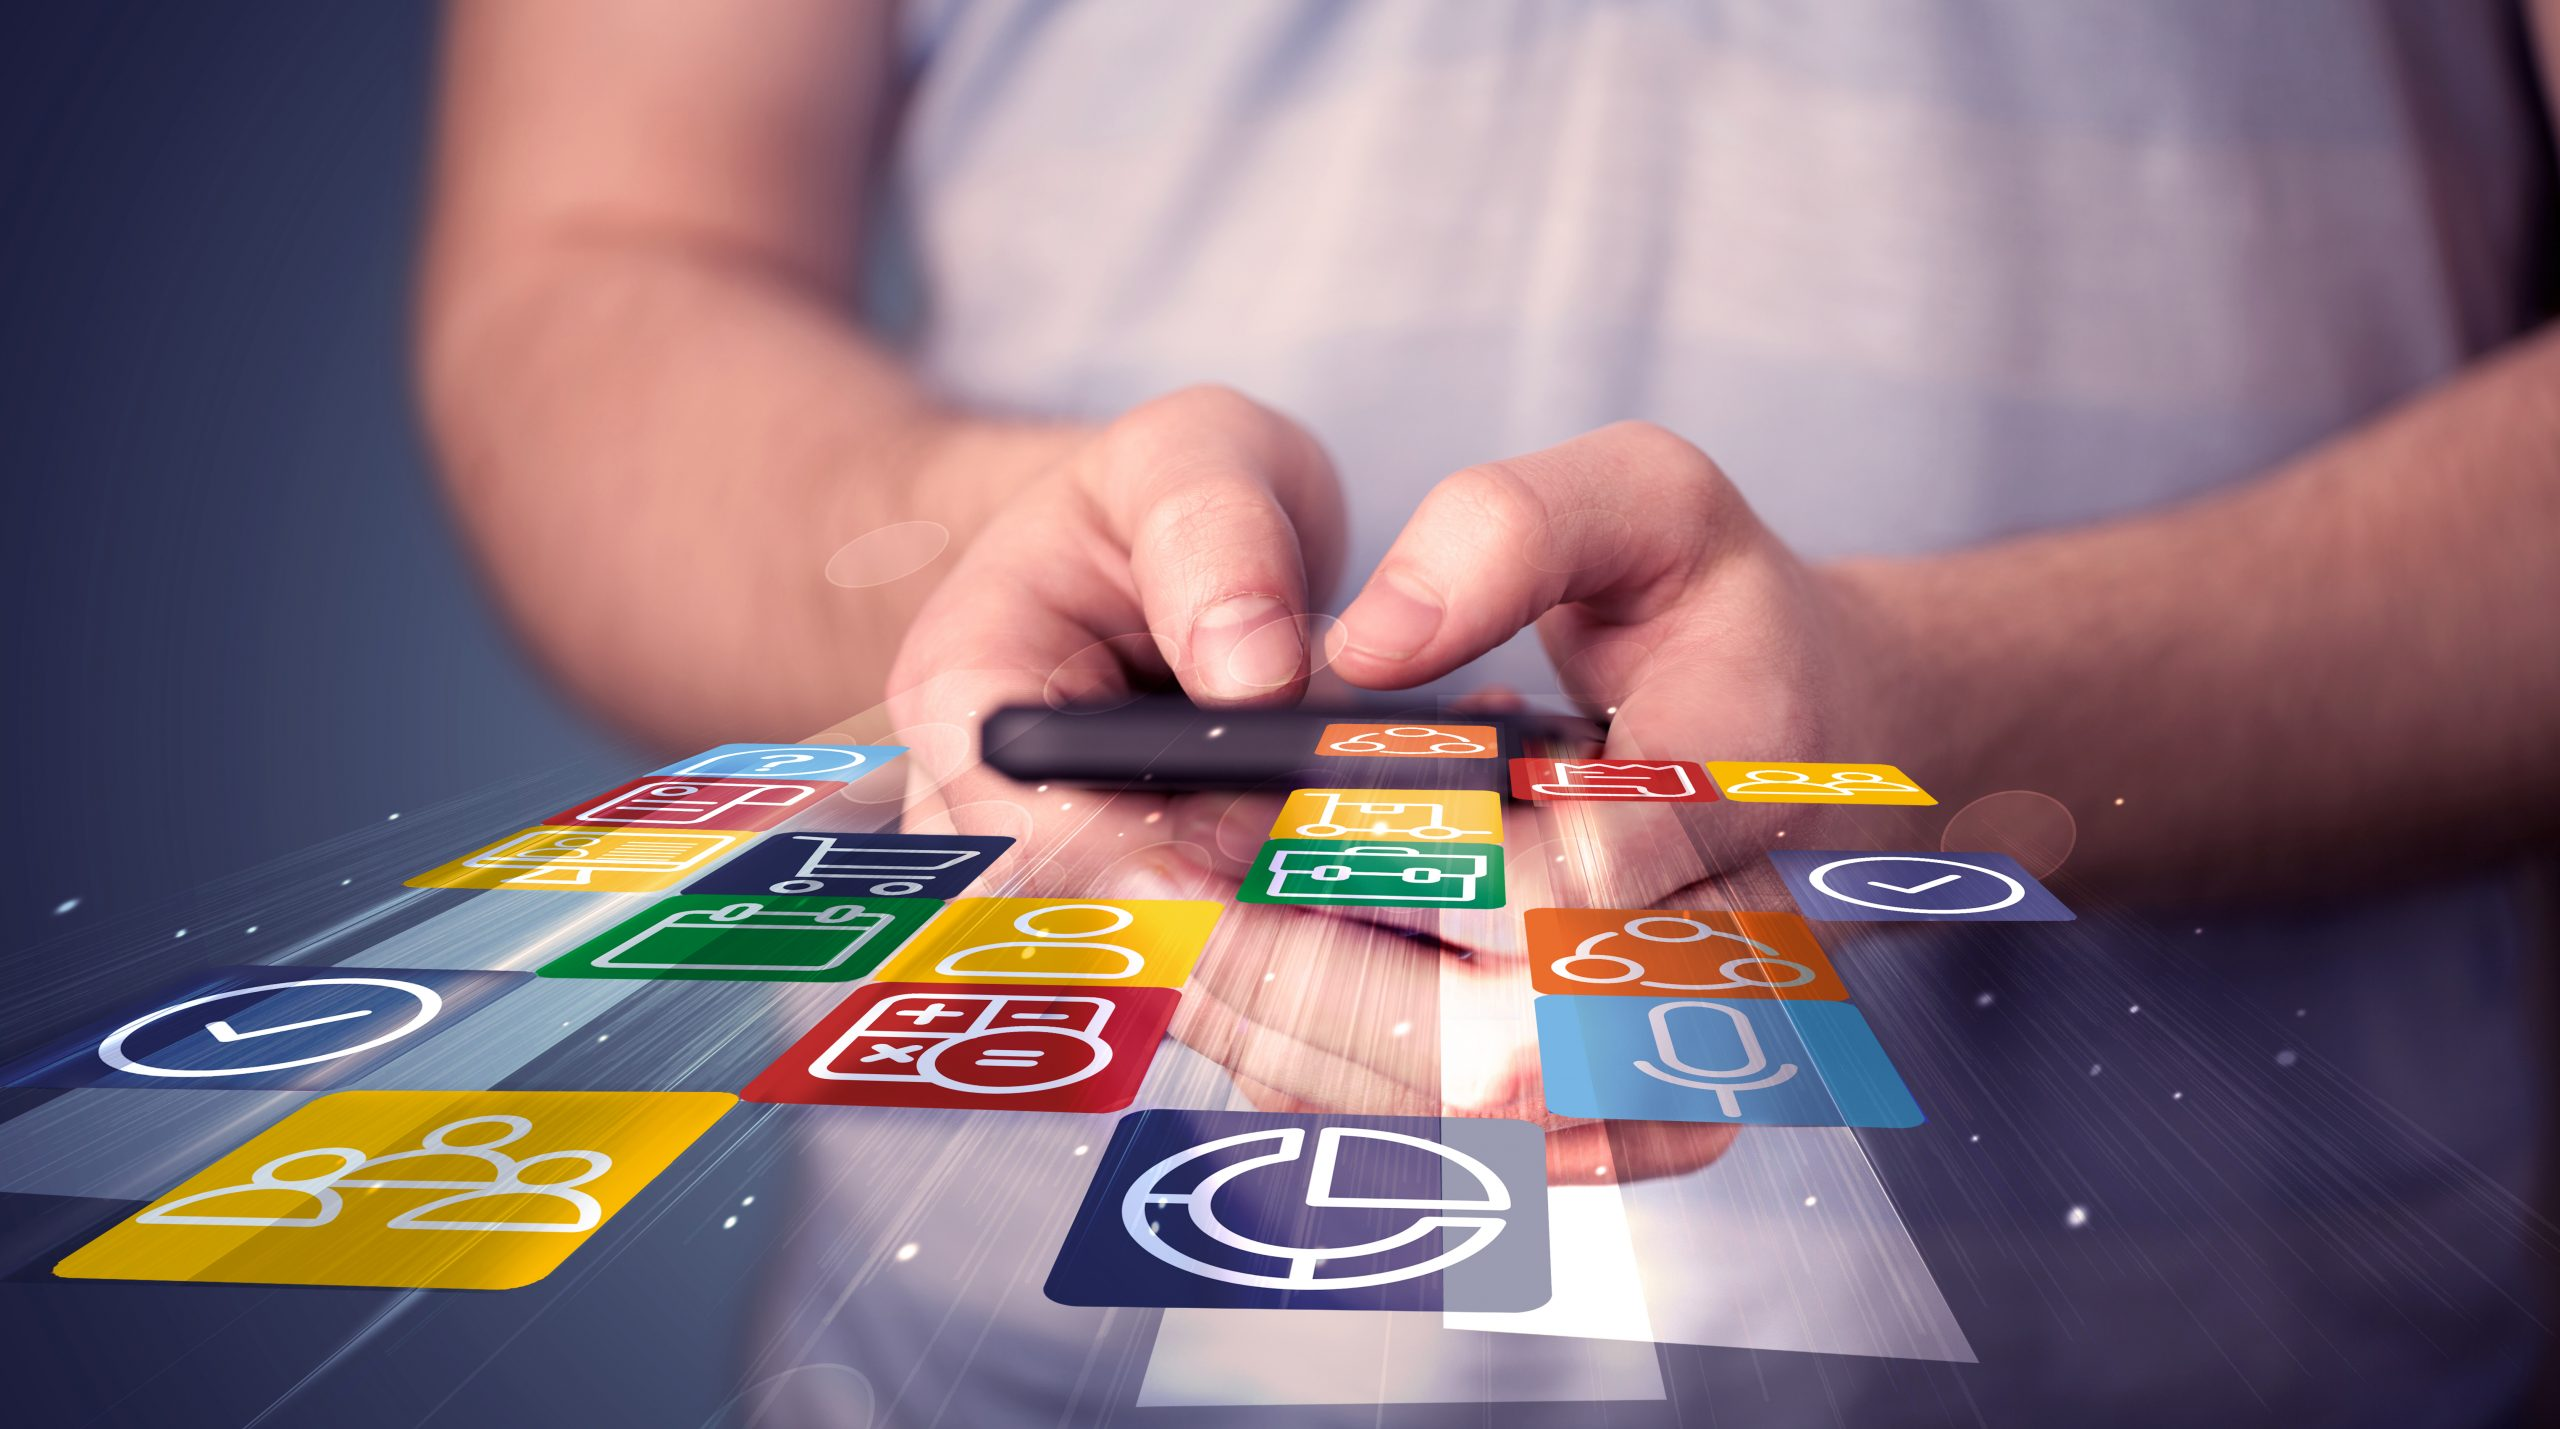 Business management software features available on your phone via the jobmate app